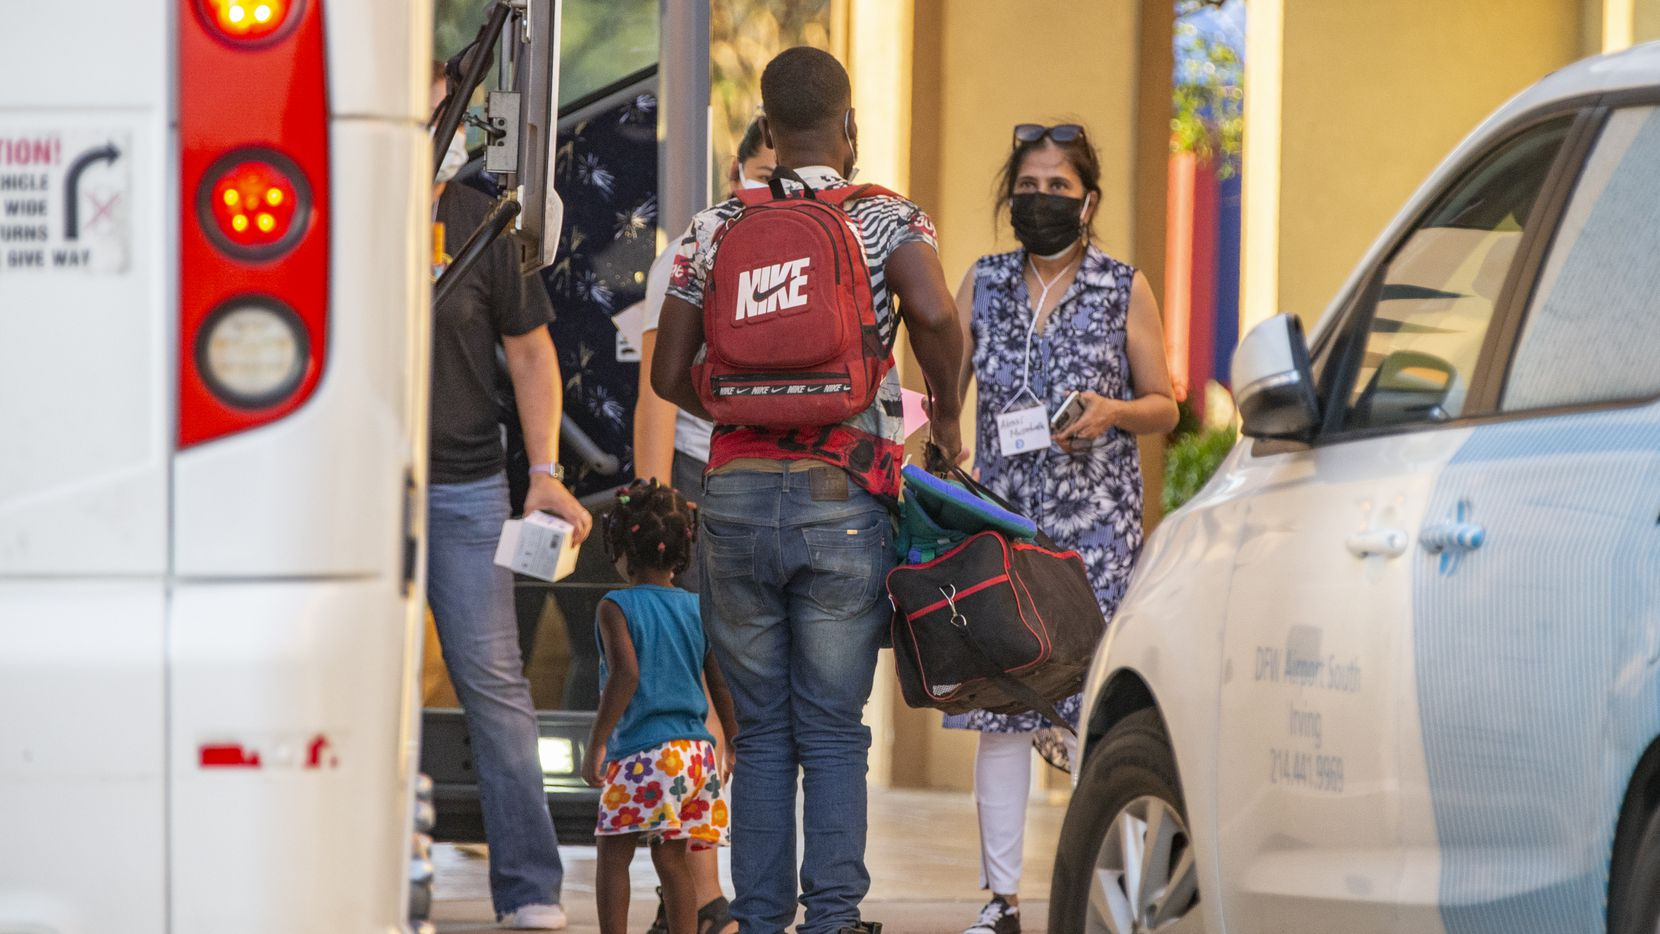 Volunteers with Faith Forward Dallas help migrant families from Haiti and Cuba exit a coach bus at a hotel in Irving, Wednesday, August 11, 2021.